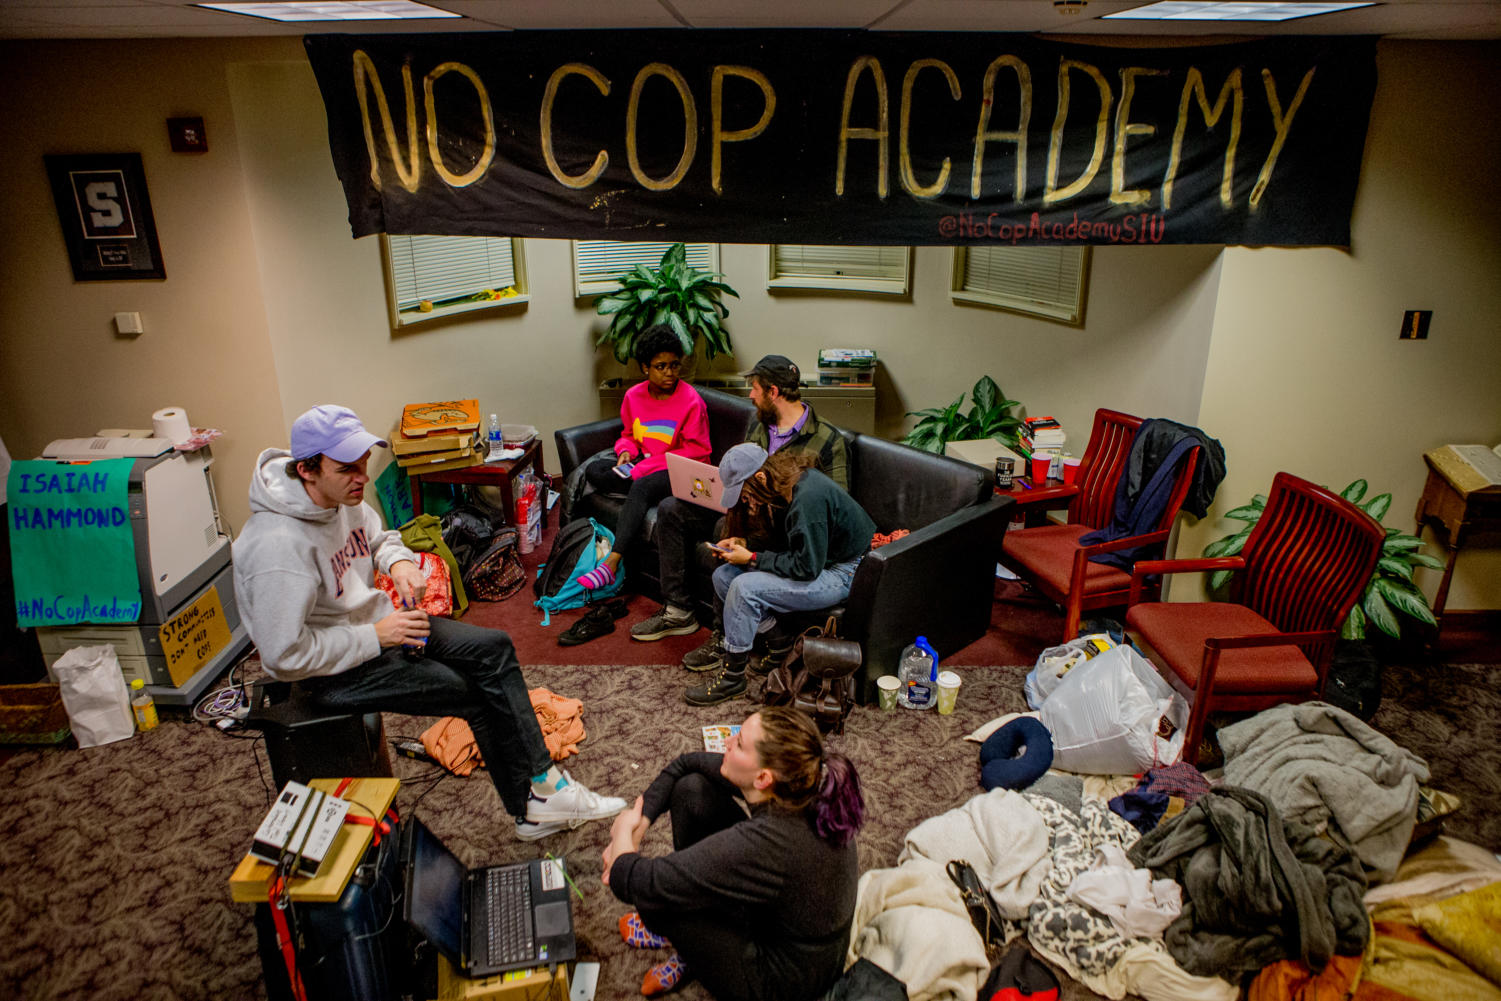 Demonstrators talk with each other on community Friday, April 6, 2018, during an occupation of SIU Chancellor Carlo Montemagno's office in Anthony Hall. The occupation followed a march through campus the previous day in protest of the proposed police academy at the Southern Illinois University Carbondale campus. (Brian Munoz | @BrianMMunoz)